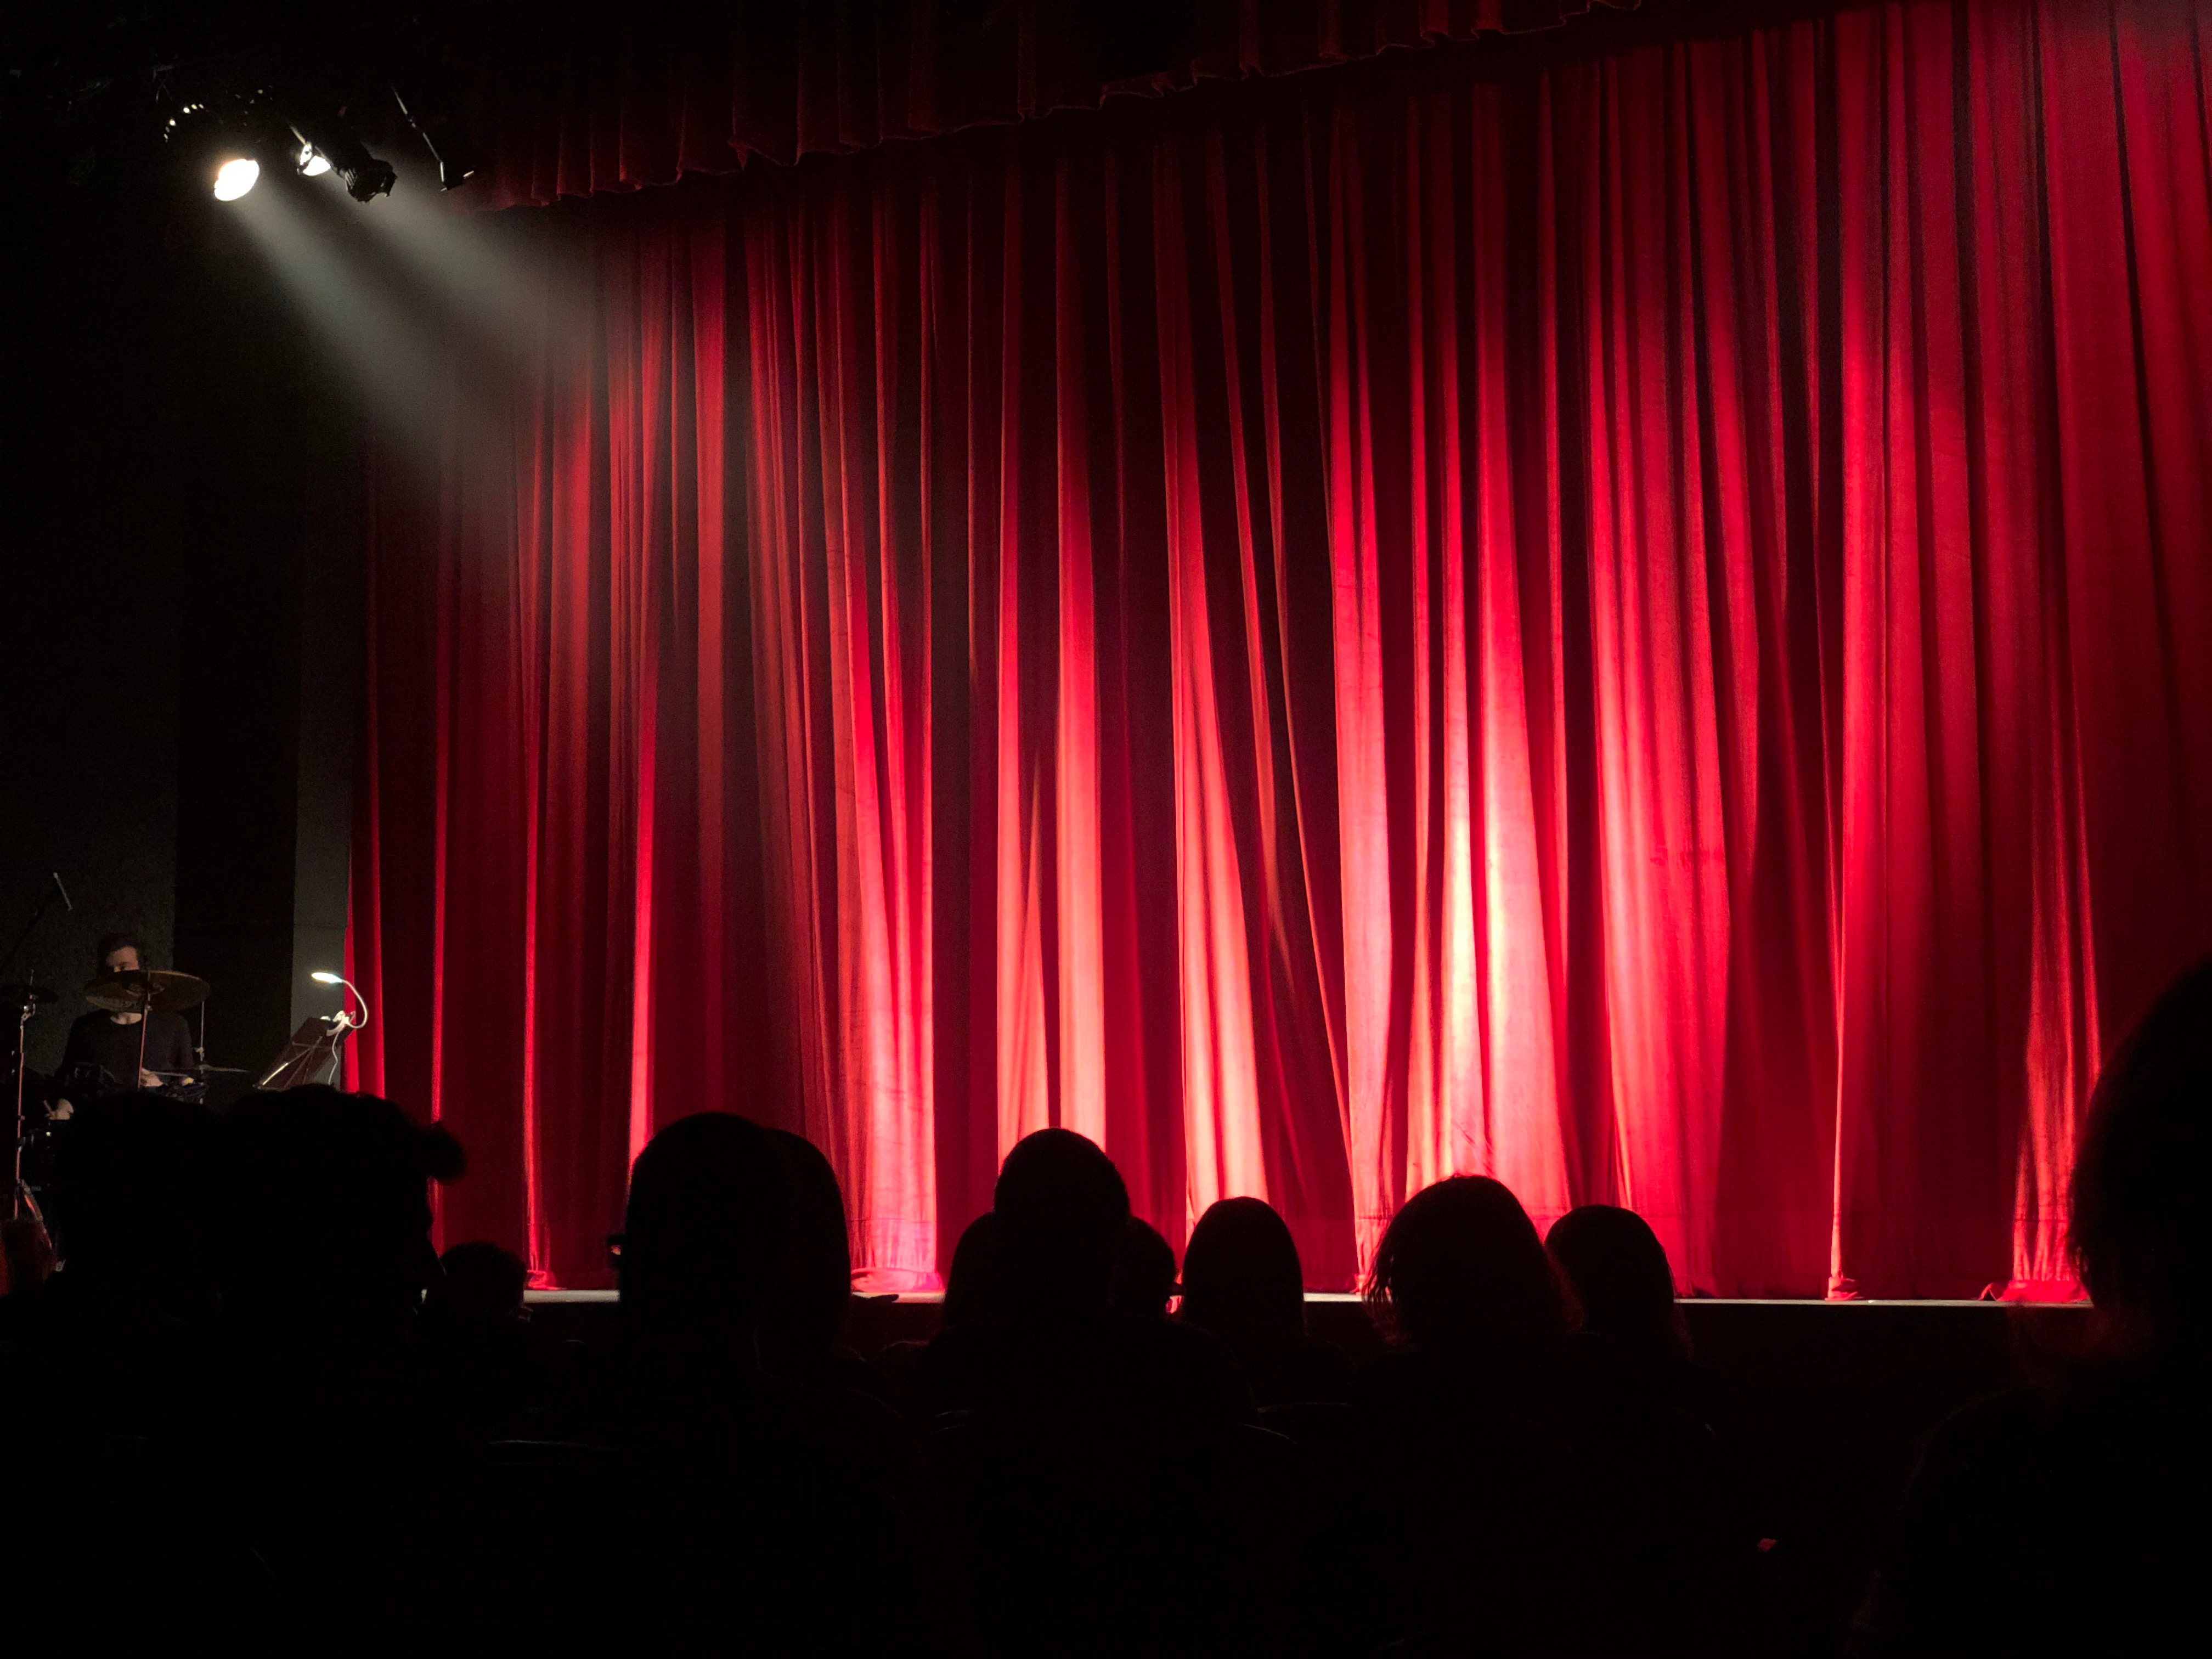 Canva - People at Theater